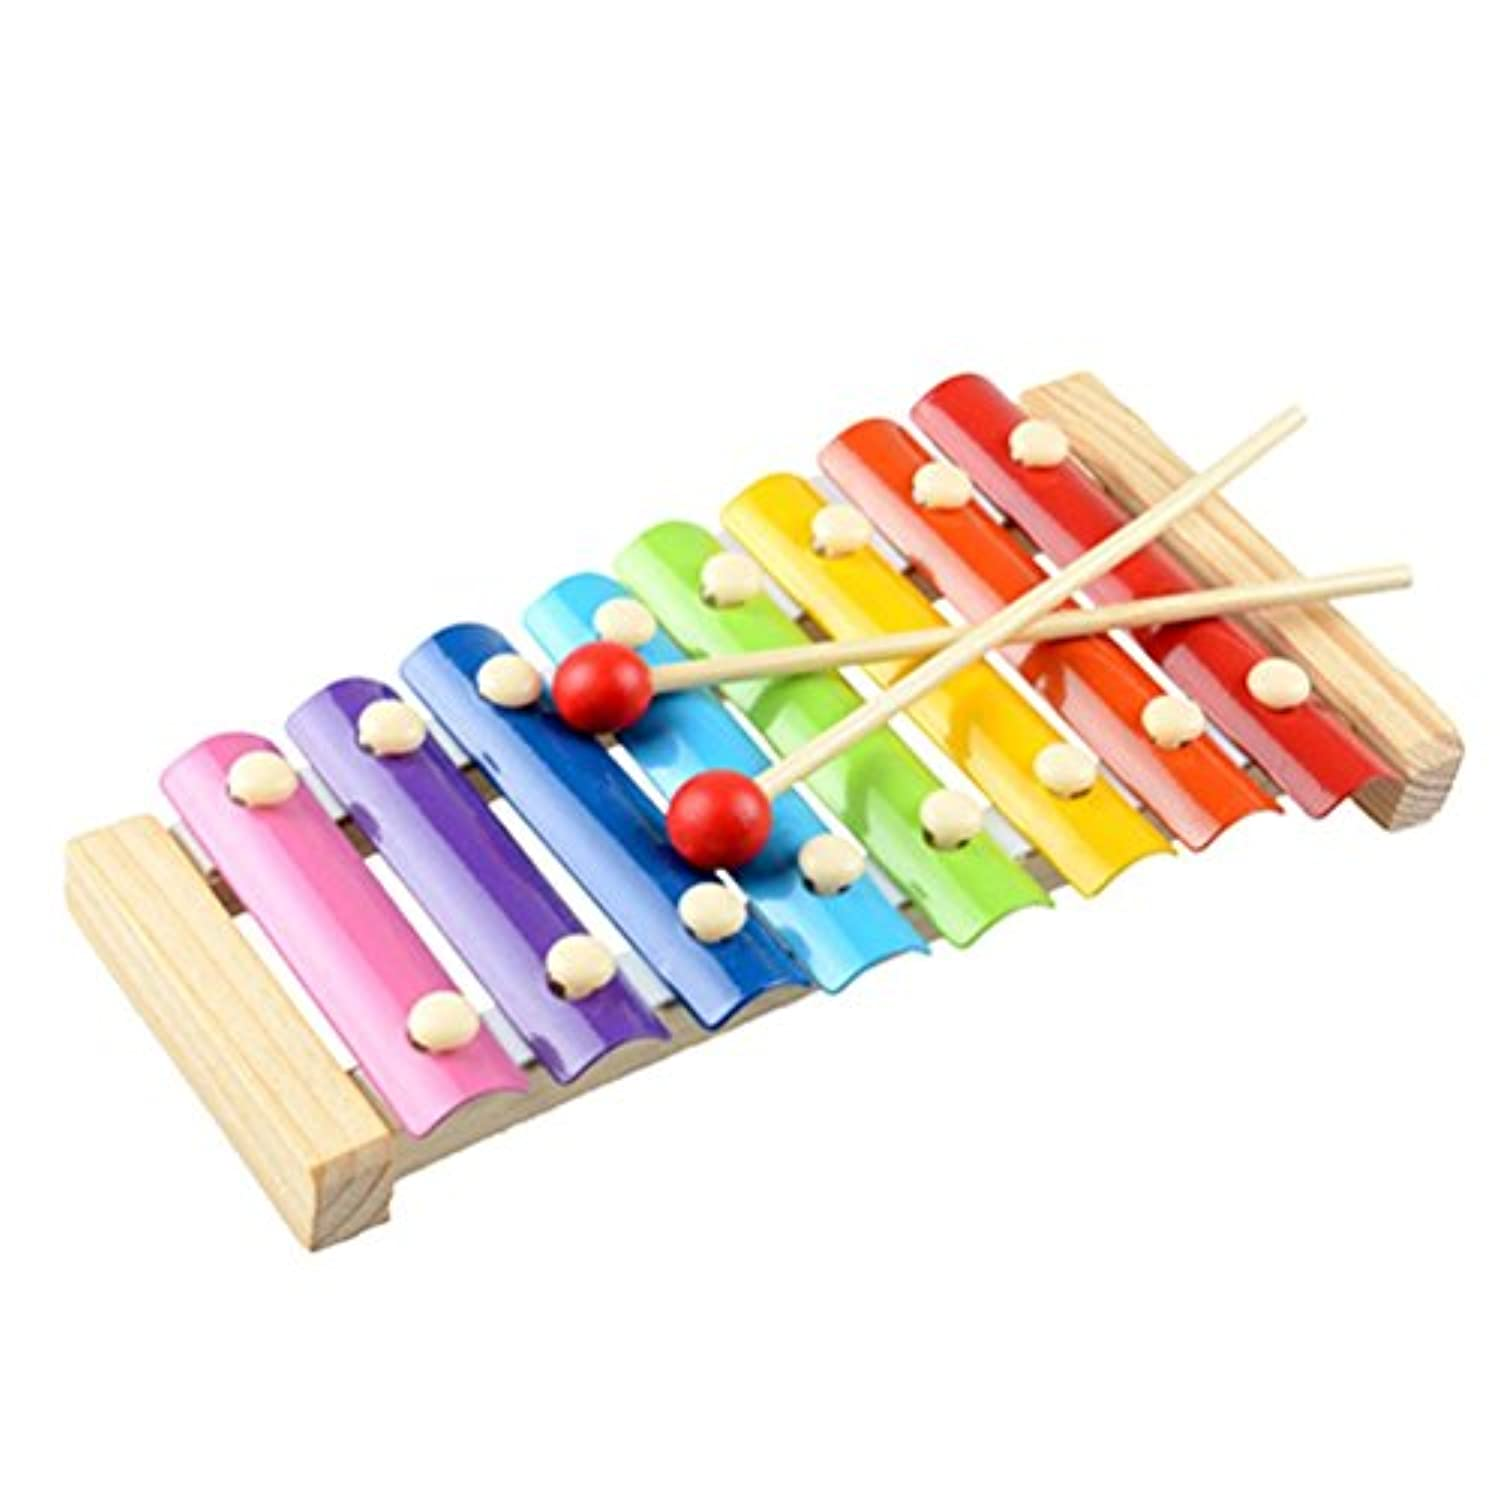 SUNONE11 Wooden Glockenspiel Xylophone 8 Notes Colourful Hand Knock with Two Mallets Musical Instrument Educational Toy for Kids Children's Day Gift,23cm x 13cm